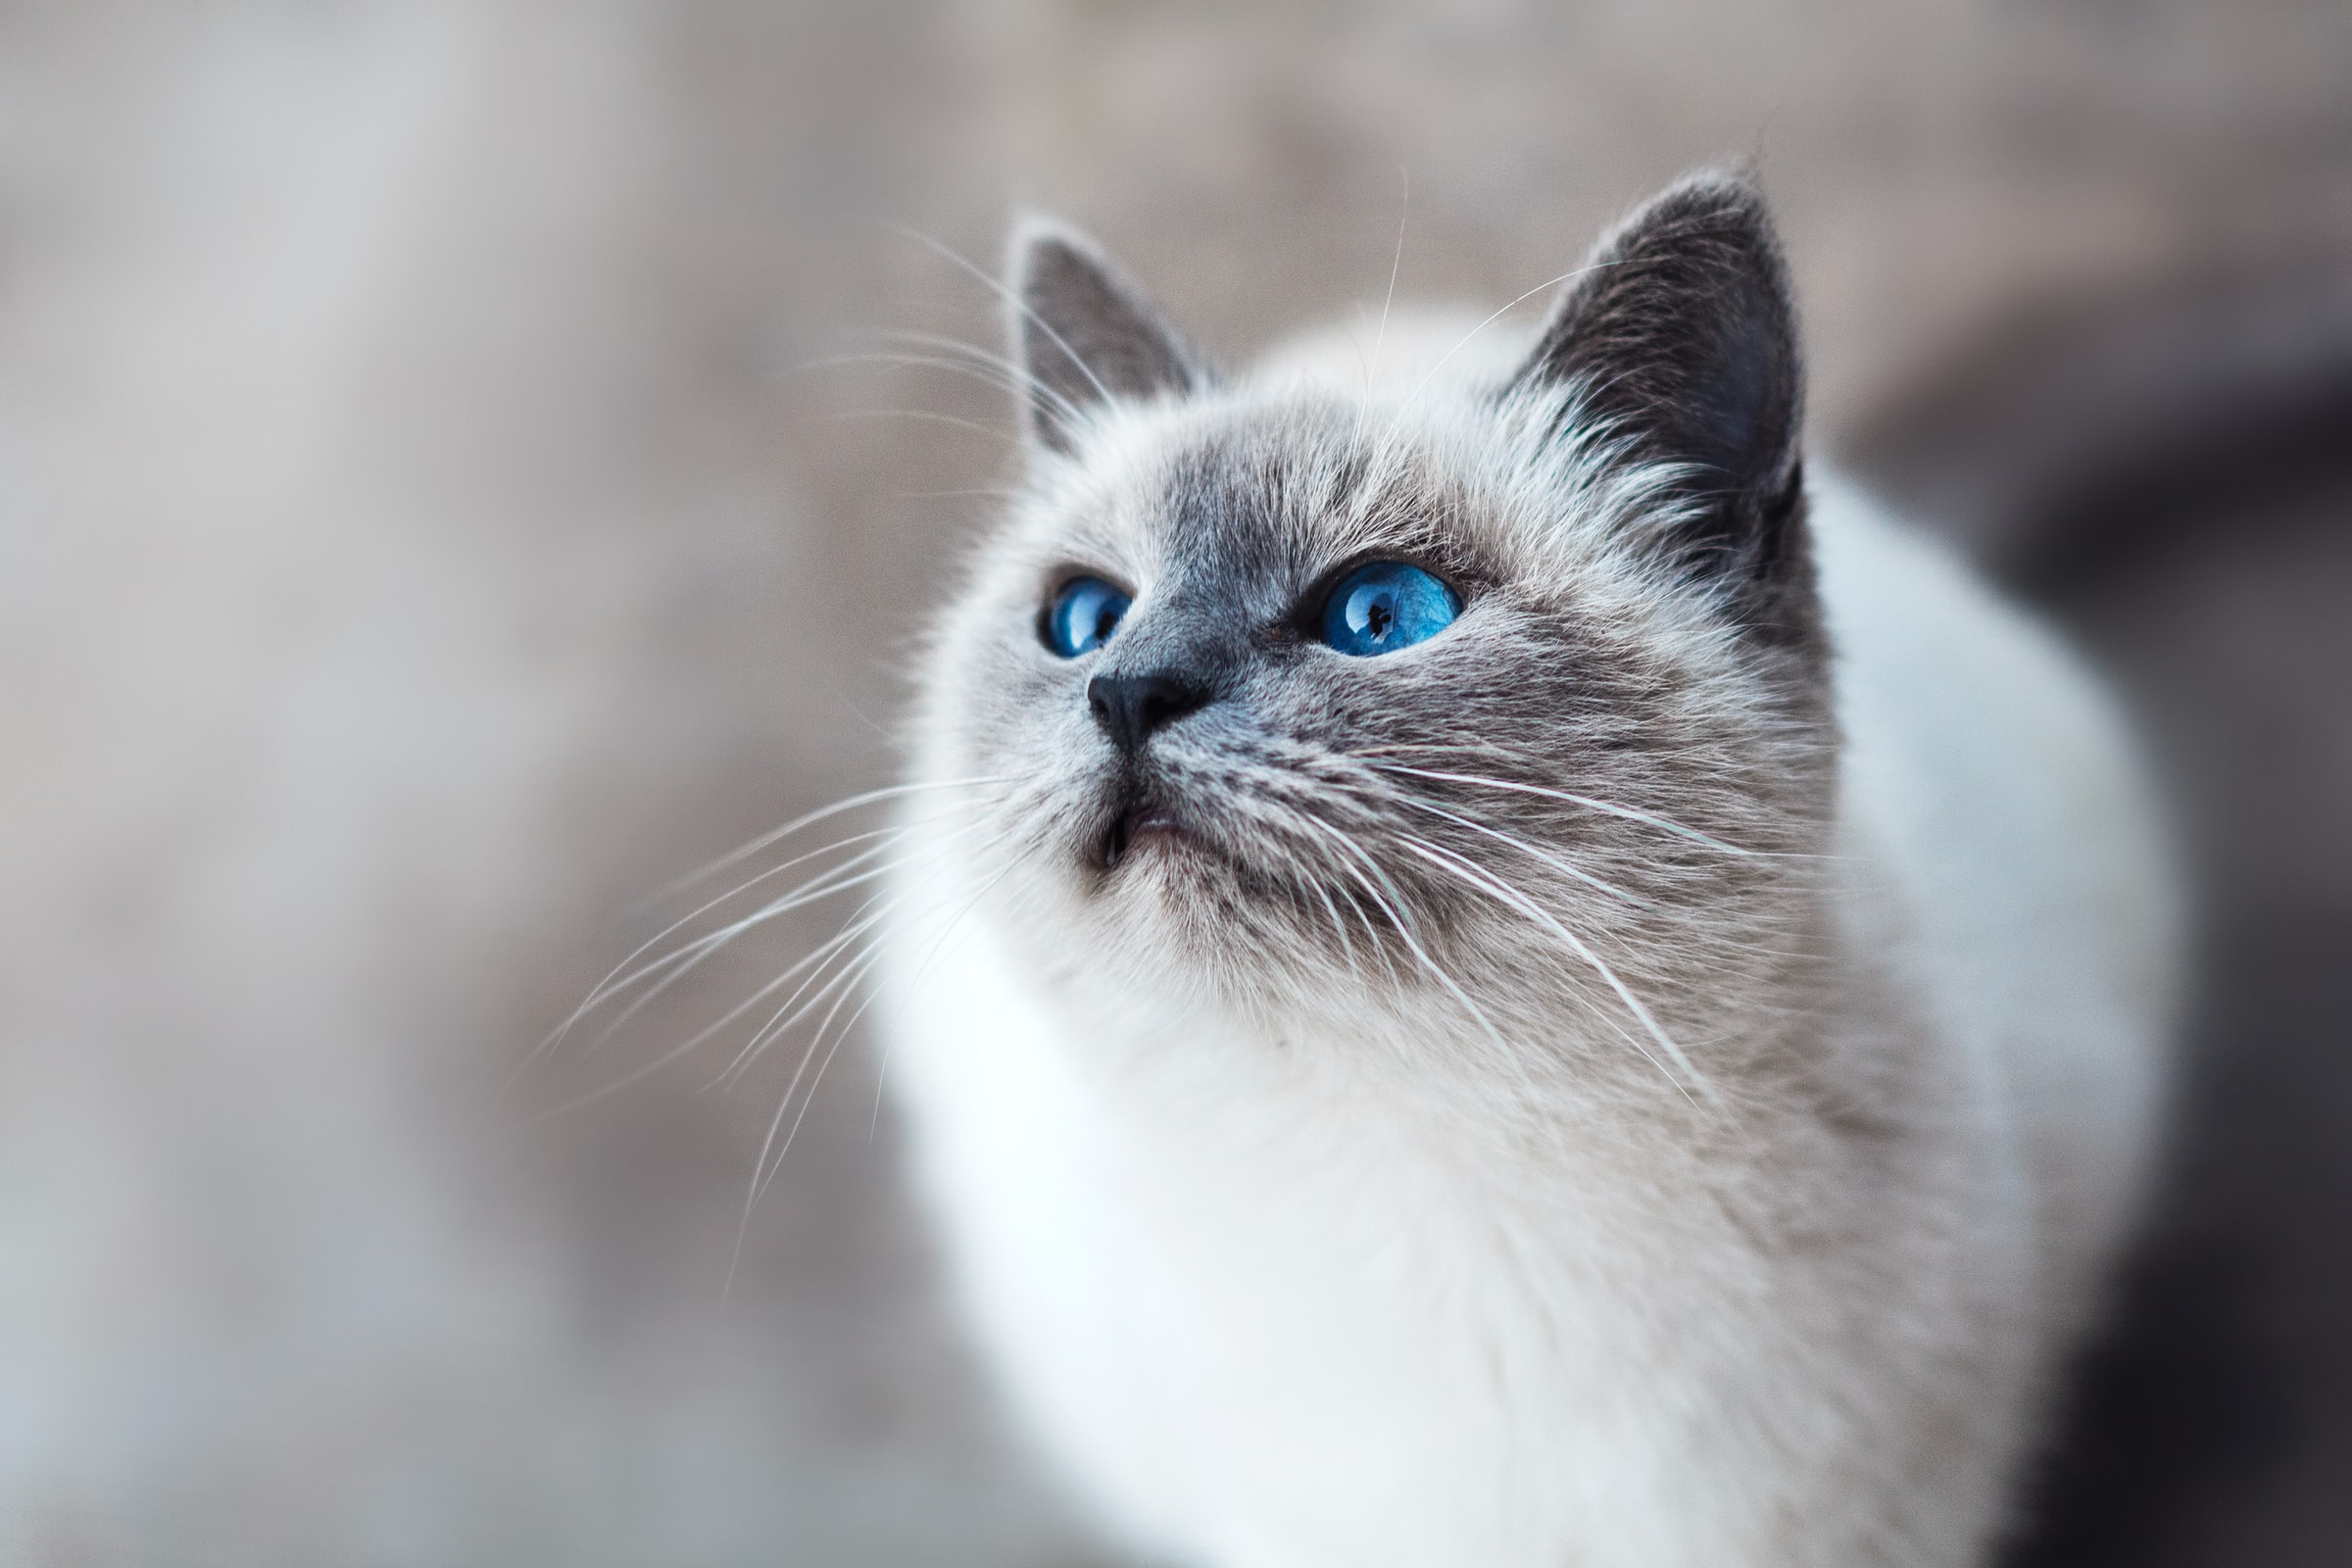 Grey and white house cat with blue eyes as a natural pest control for geckos